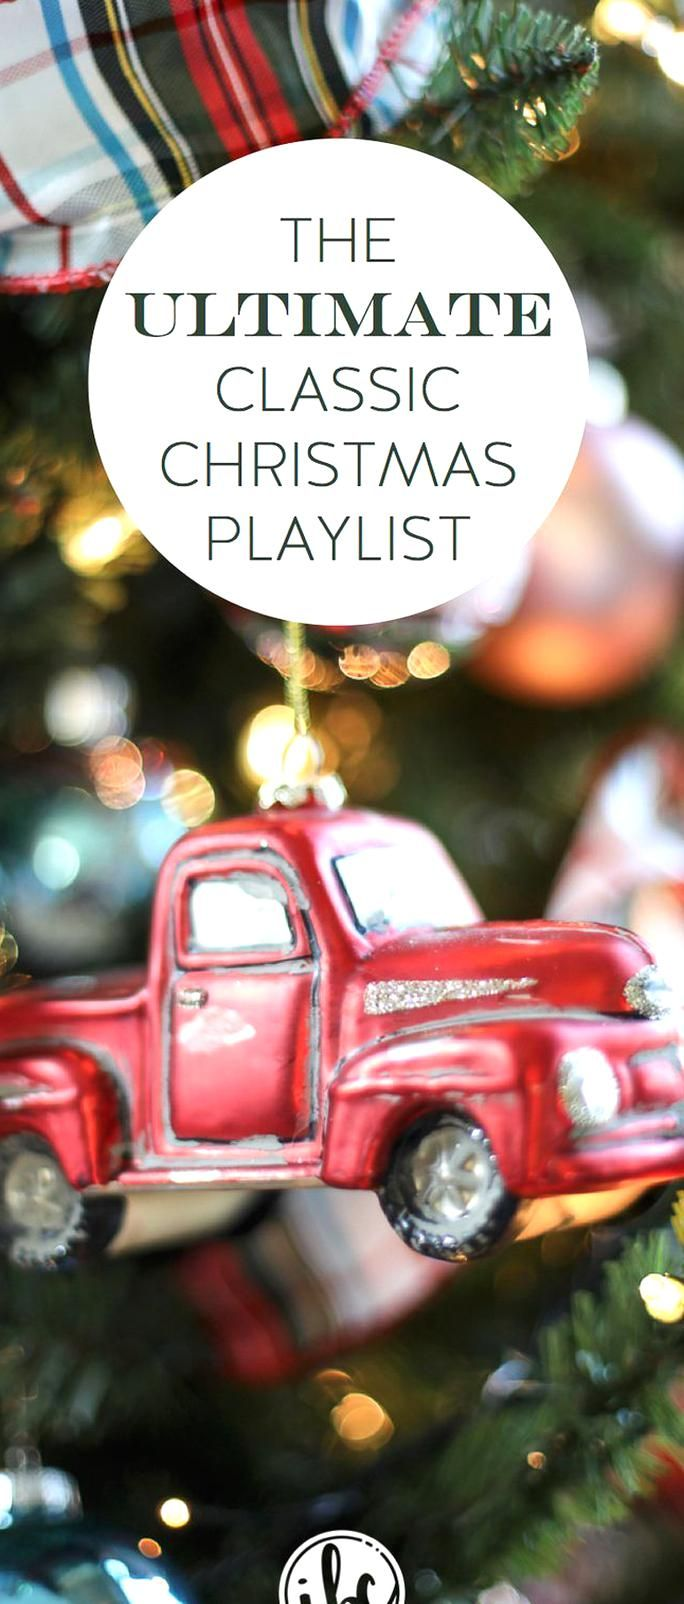 Photo of Christmas Music Playlist – The Ultimate Classic Christmas Playlist #classic #chr…